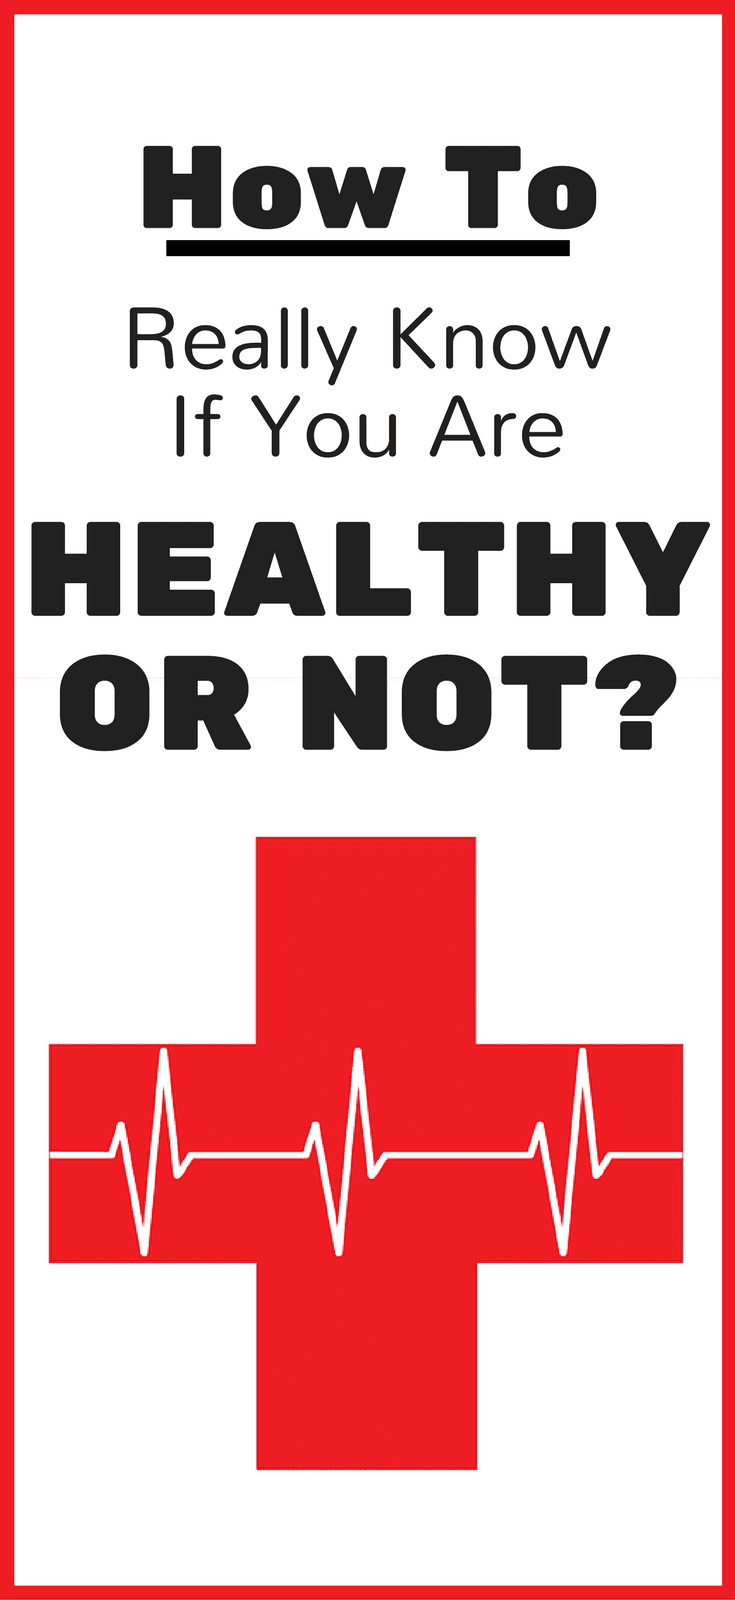 How To Really Know If You Are Healthy Or Not?